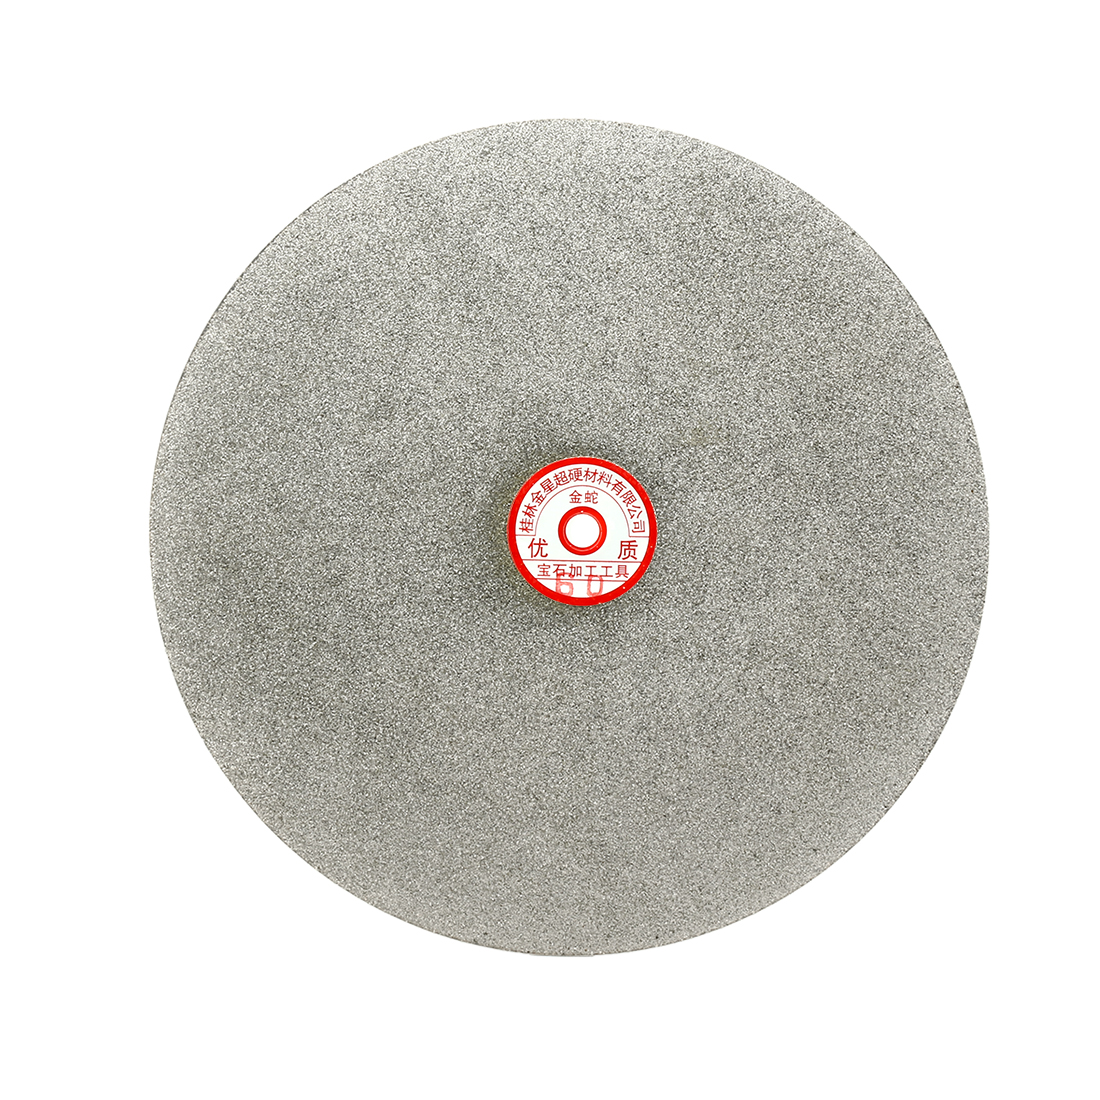 300mm 12-inch Grit 60 Diamond Coated Flat Lap Disk Wheel Grinding Sanding Disc